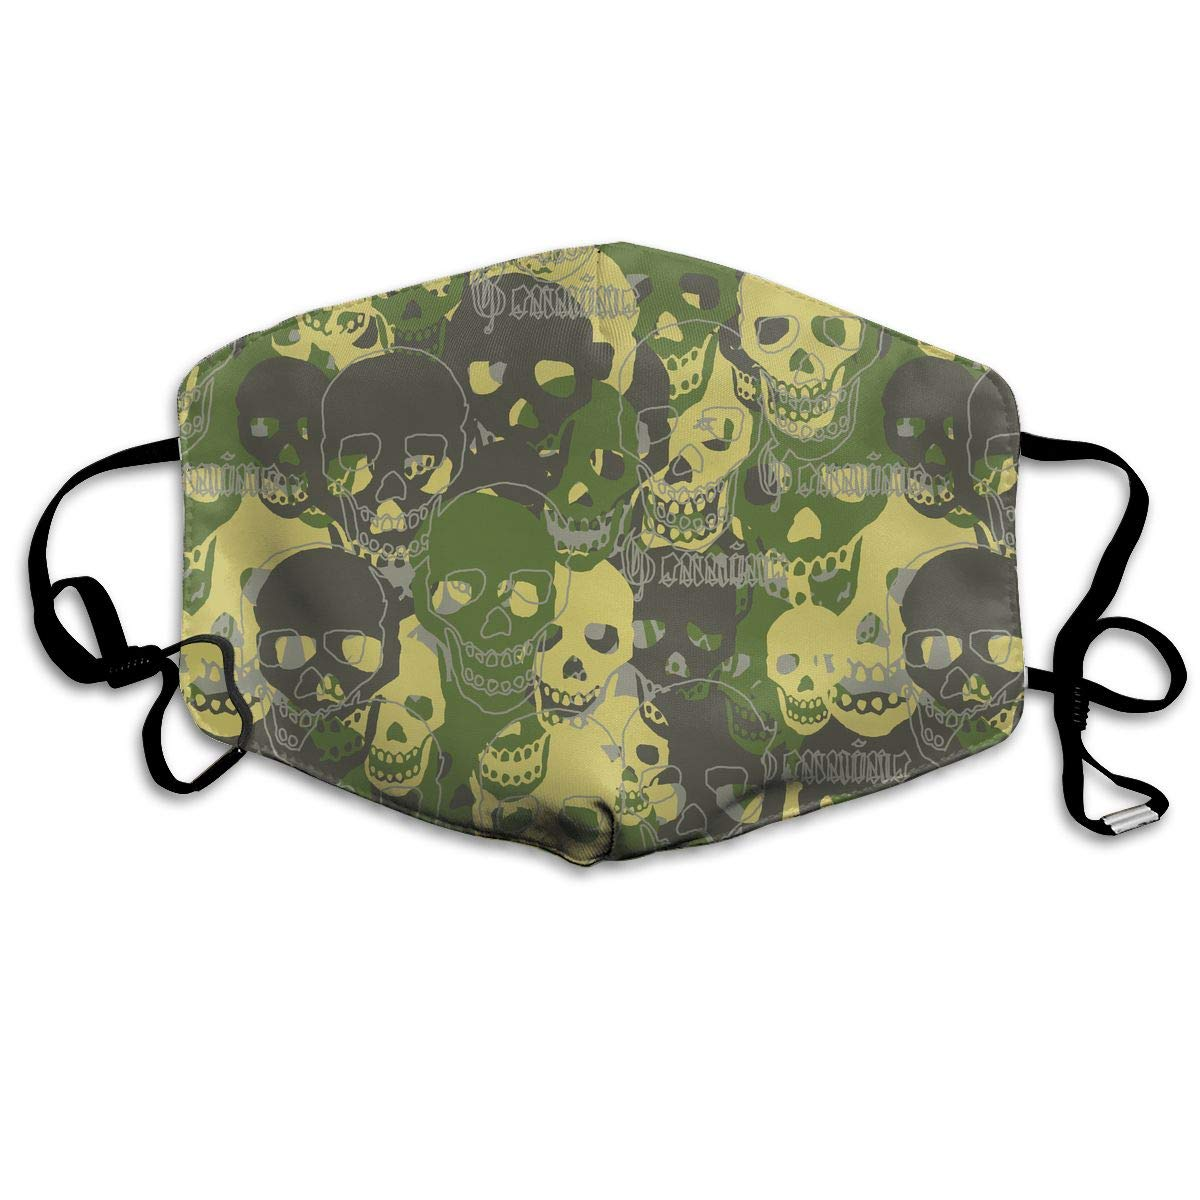 Unisex Skull Camouflage Pattern Printed Cotton Mouth-Masks Face Mask Polyester Anti-dust Masks